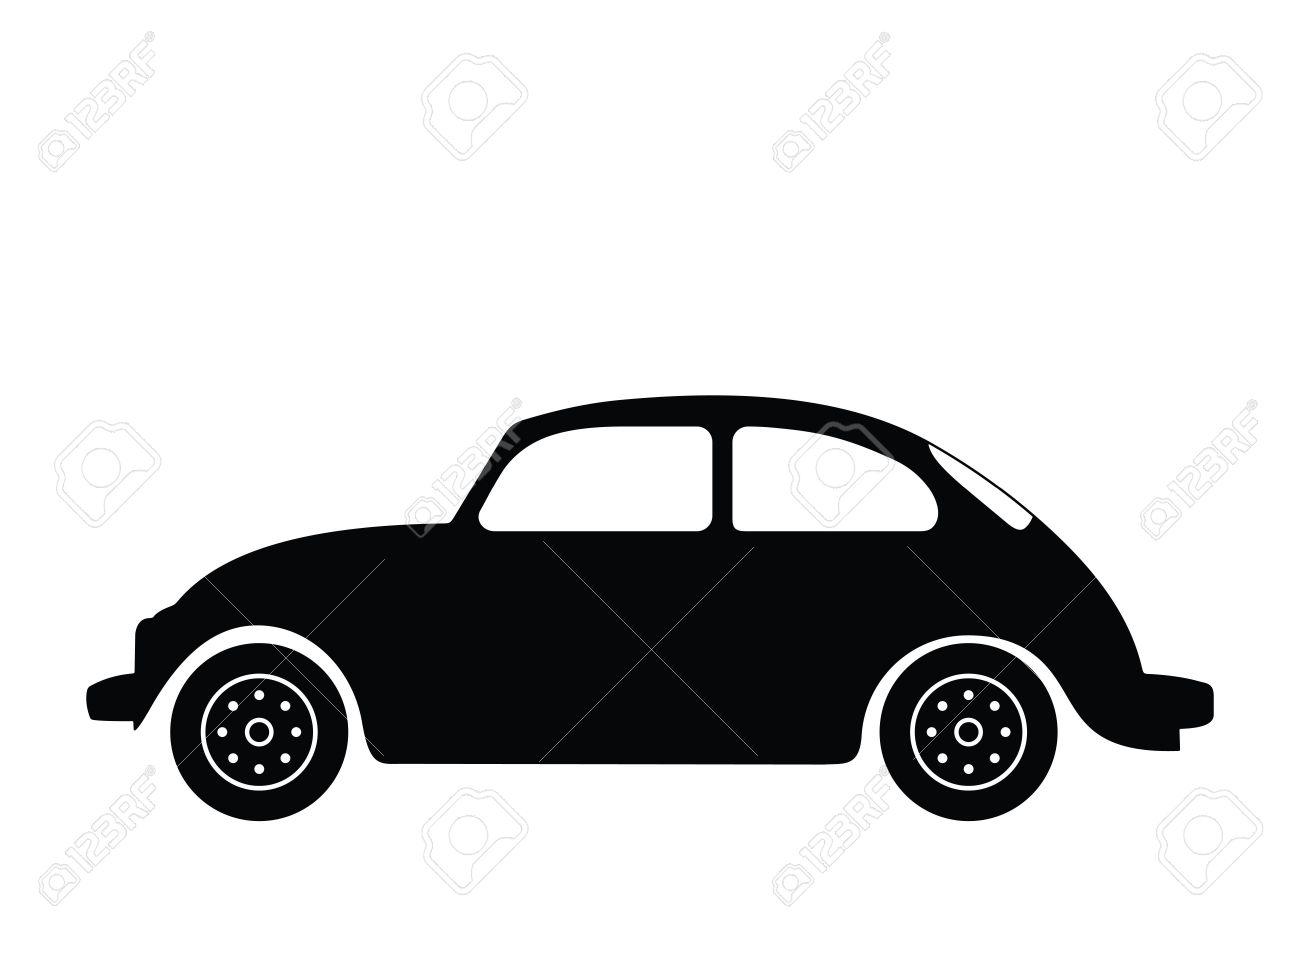 Silhouette old car, illustration - 2516586